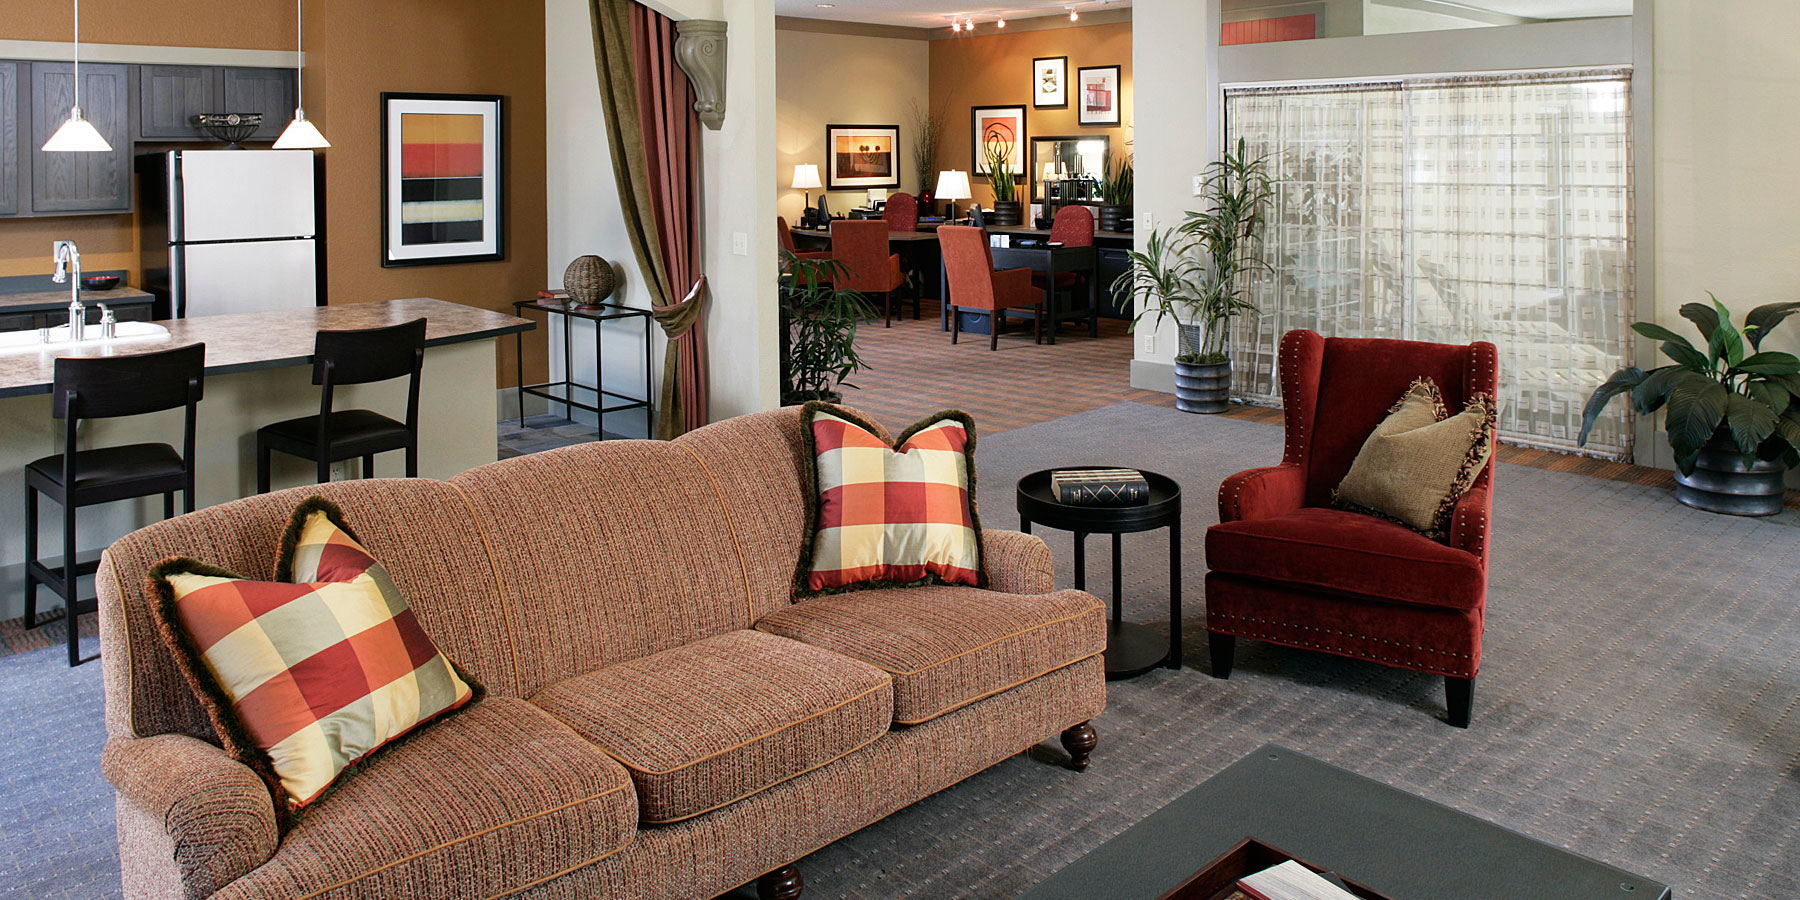 Apartments in University Place has a spacious club house